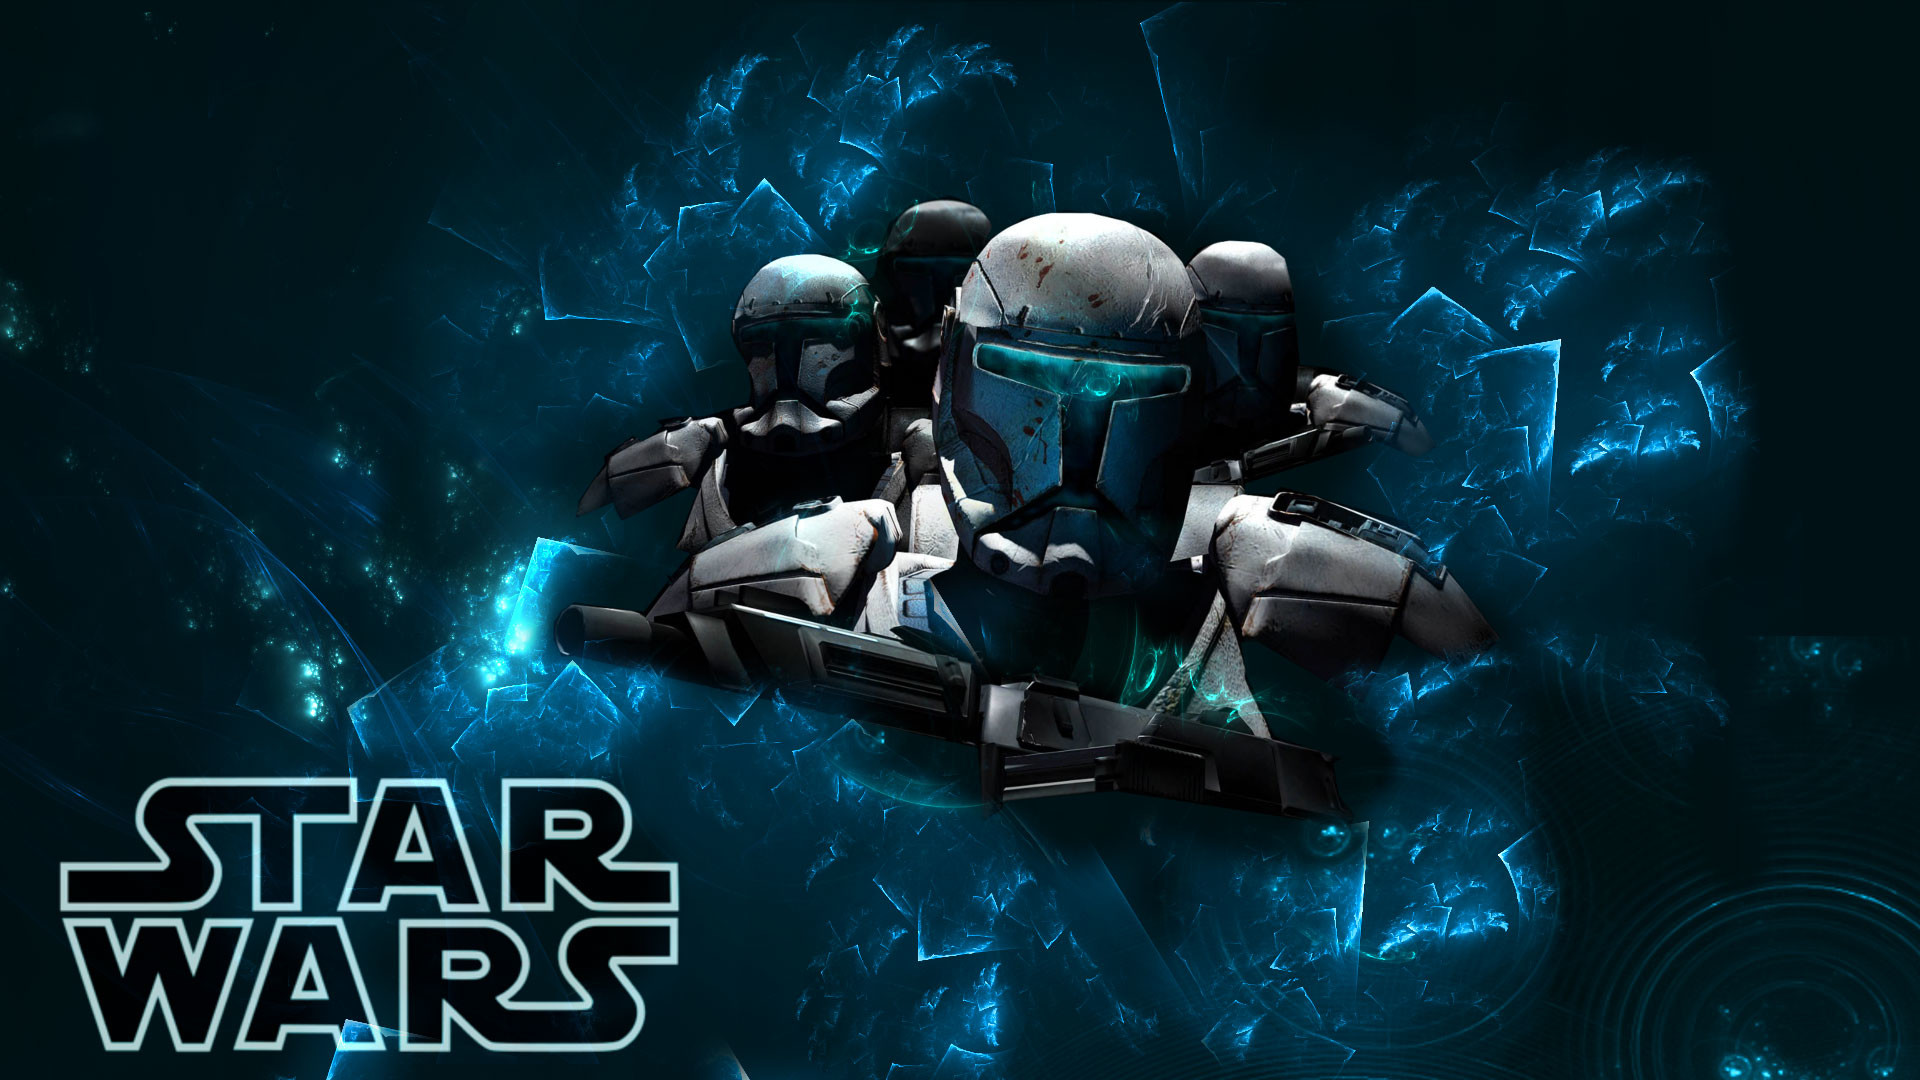 1920x1080 Stormtrooper Star Wars Wallpaper (6)